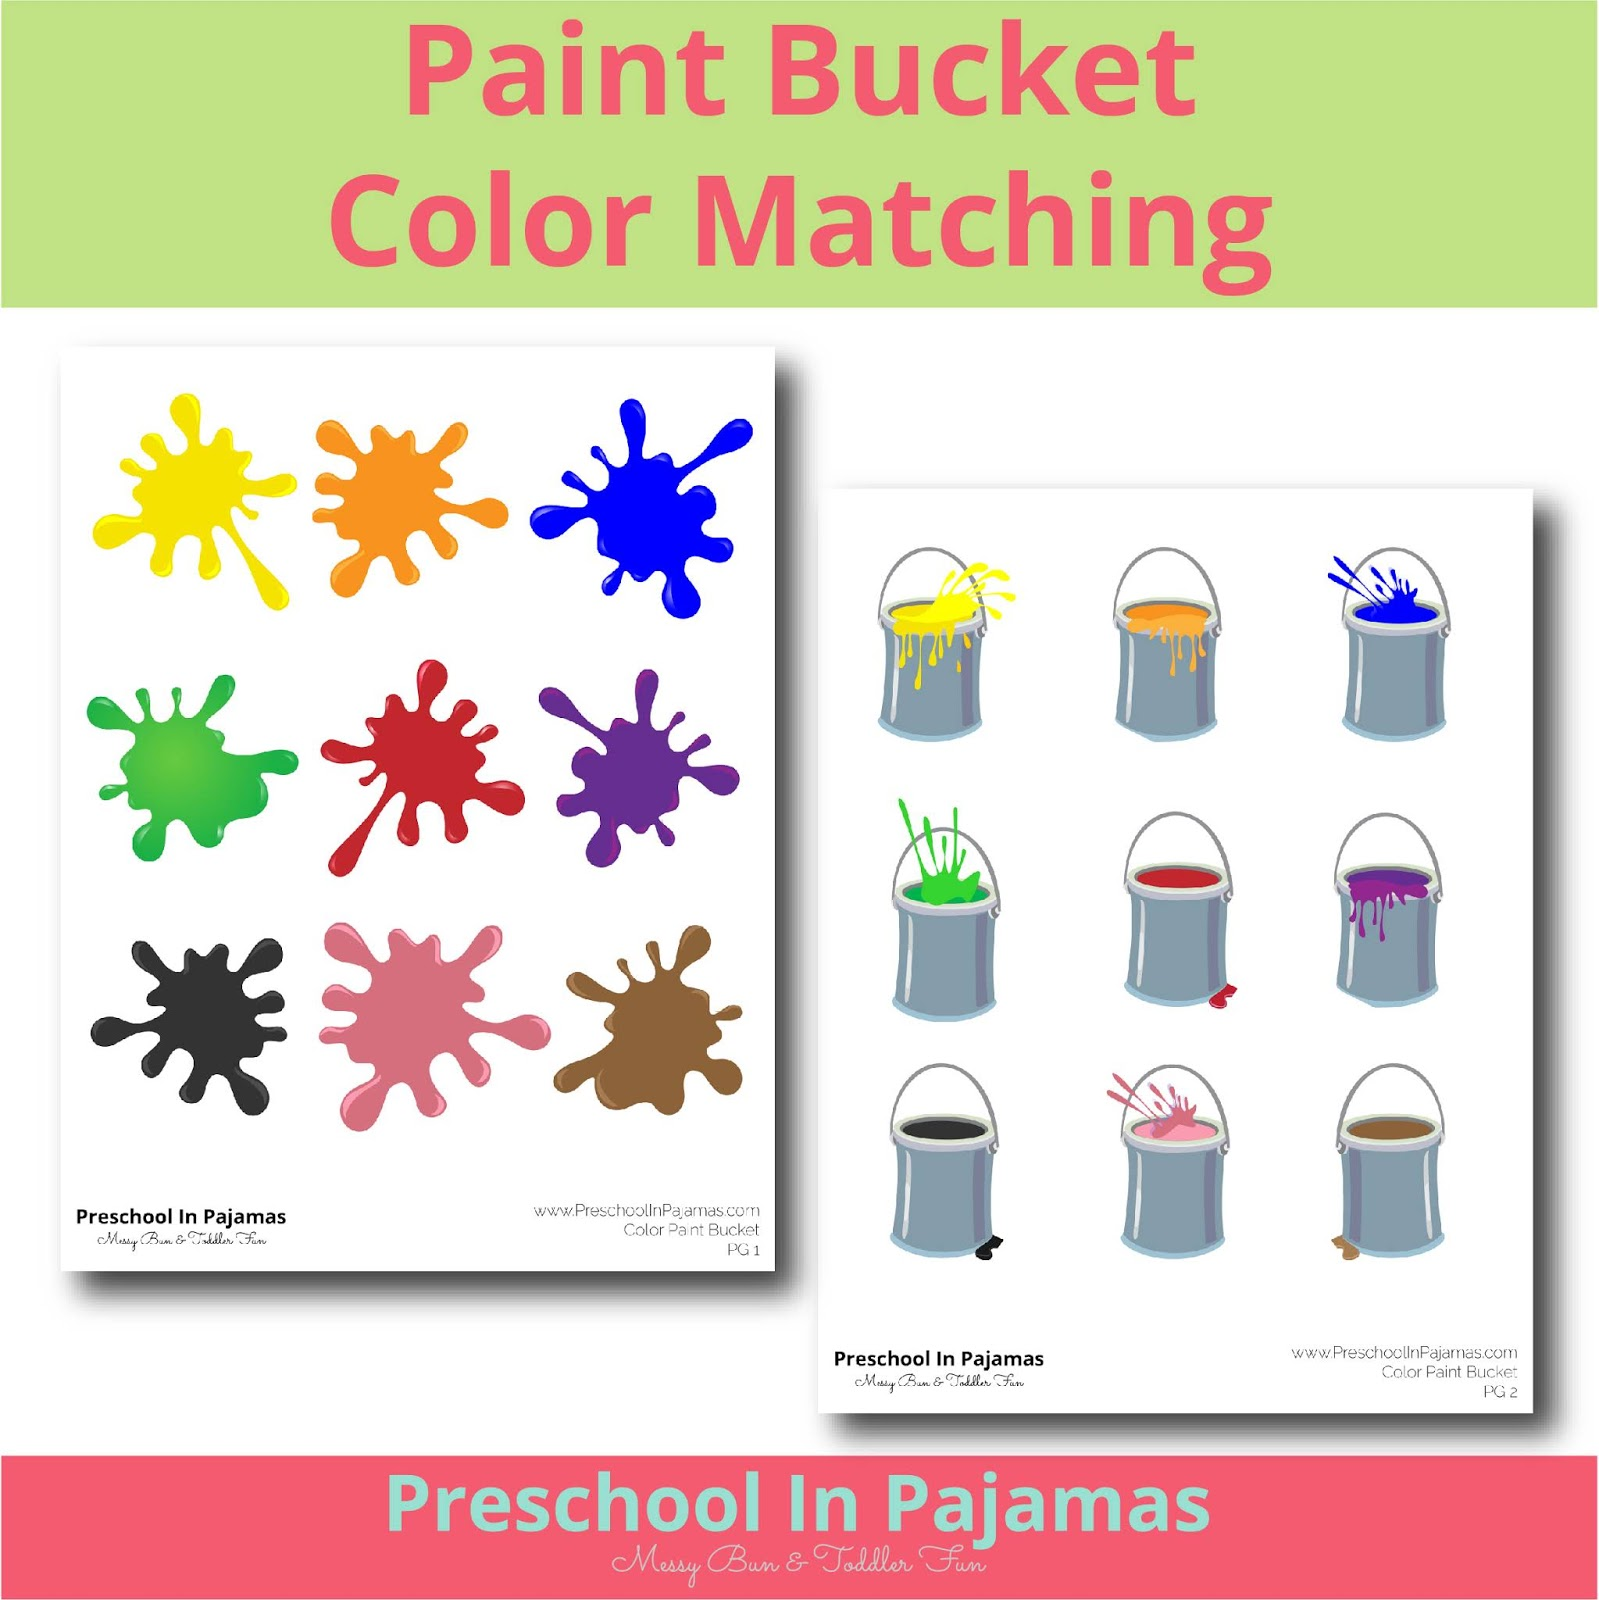 Free Paint Bucket Color Matching Printable Game